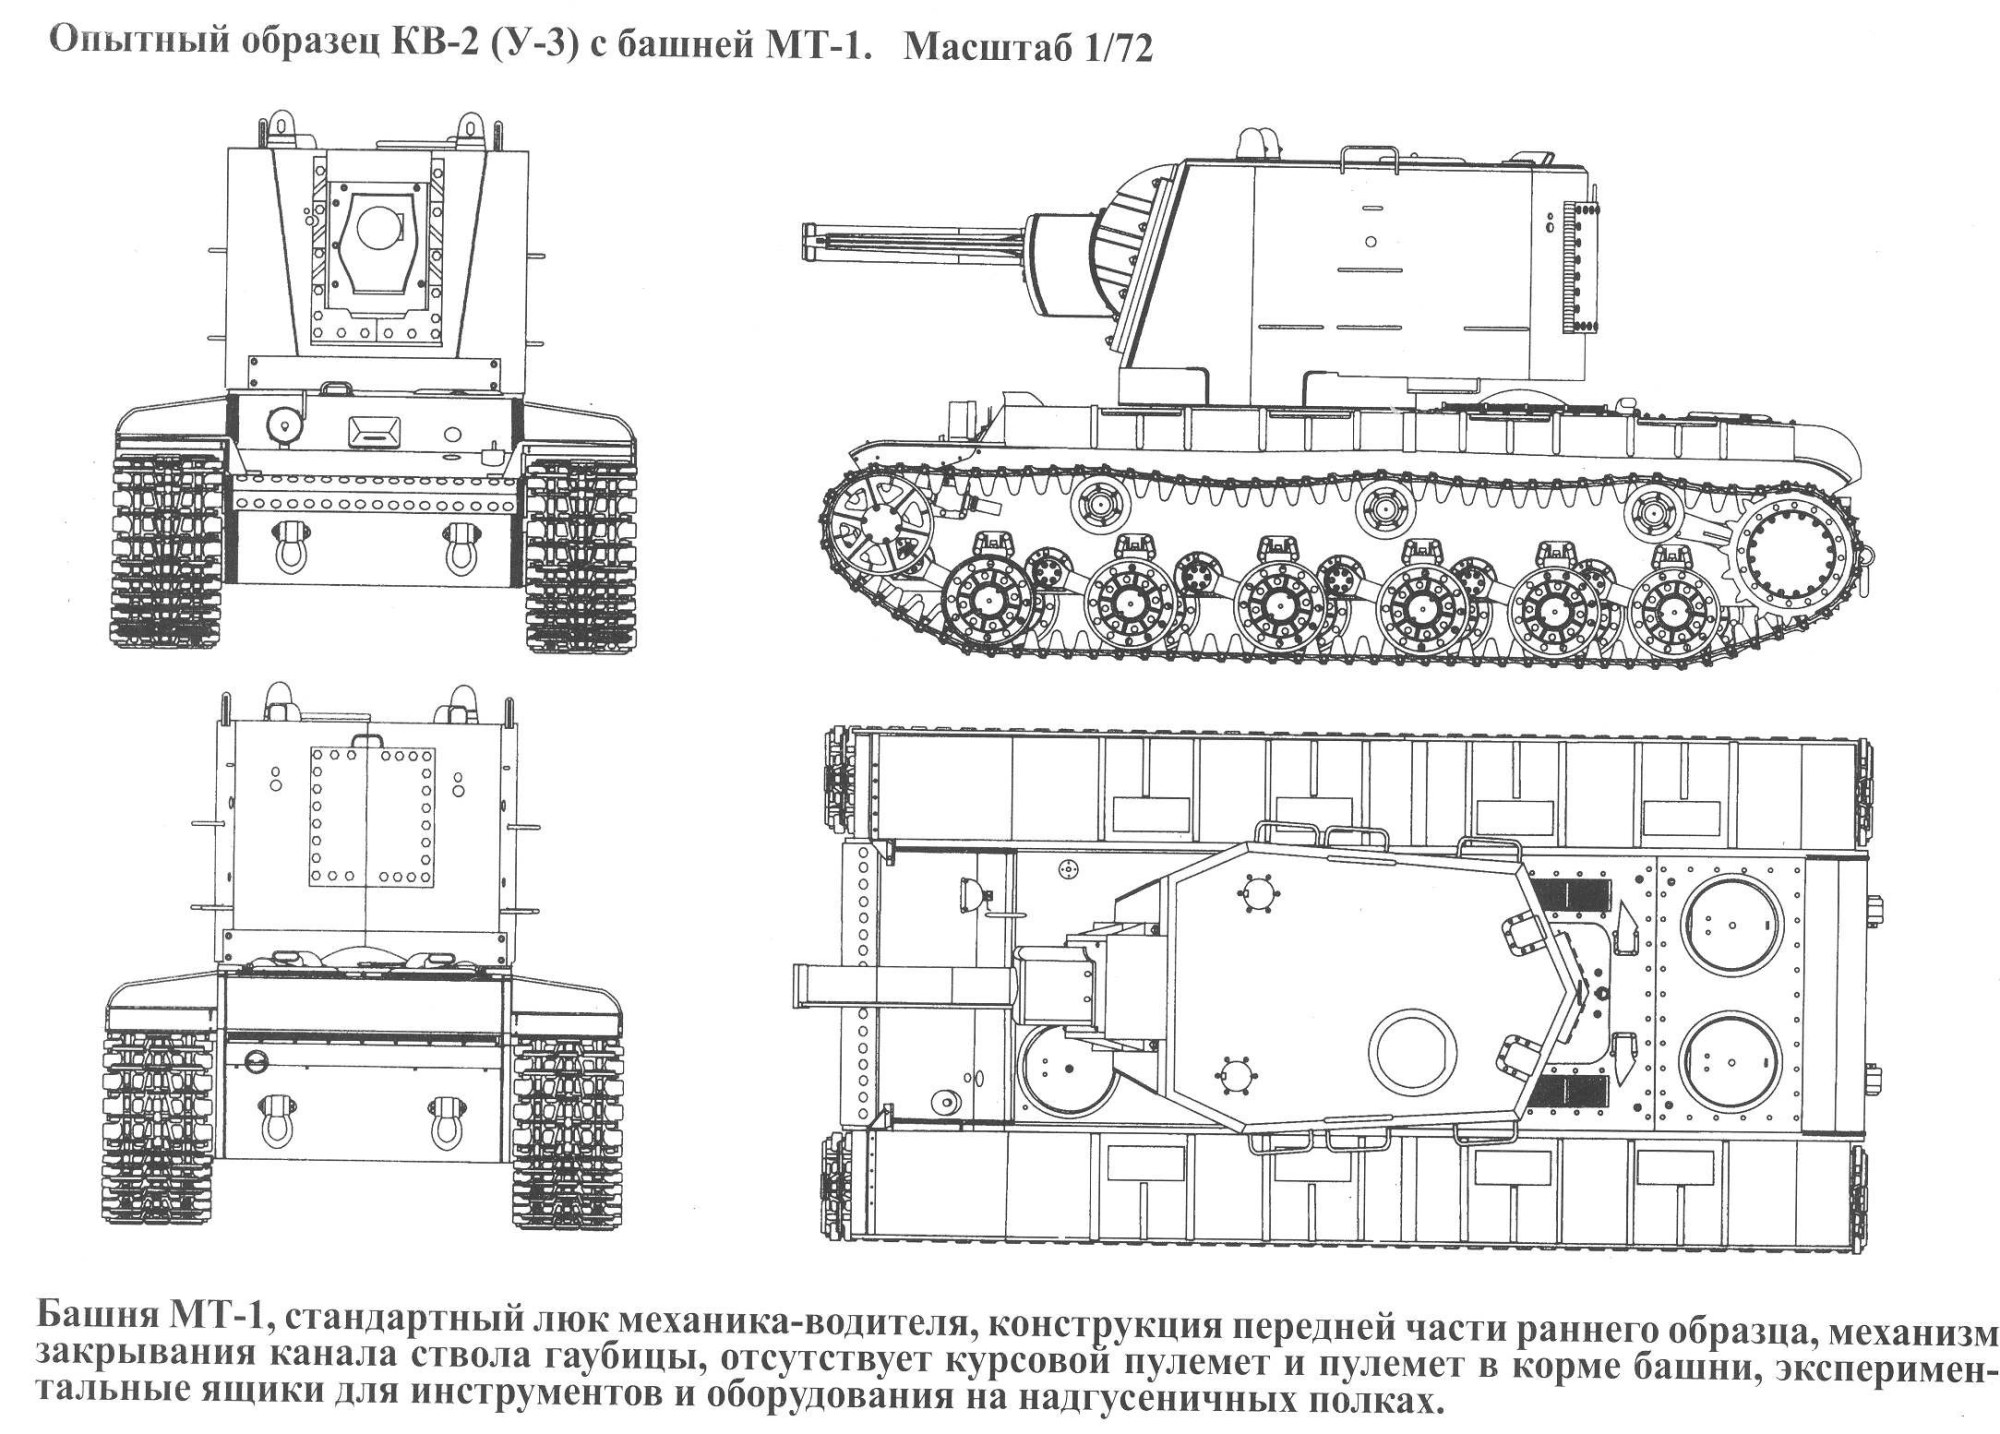 hight resolution of modern tank schematics simple wiring schema kv 2 soviet heavy self propelled gun 1940